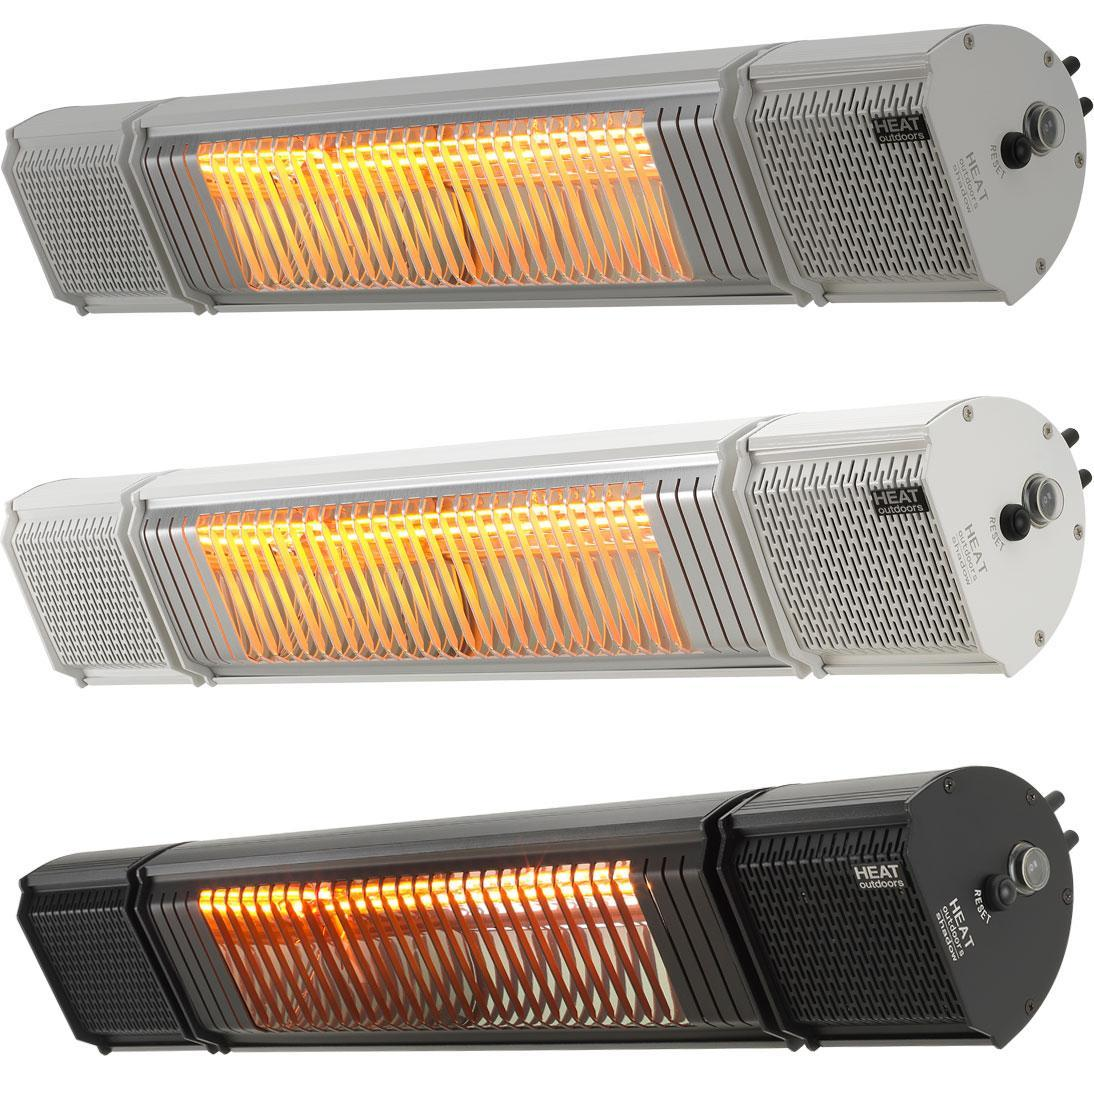 Electric Patio Heaters With FREE Next-Day Delivery At Heat